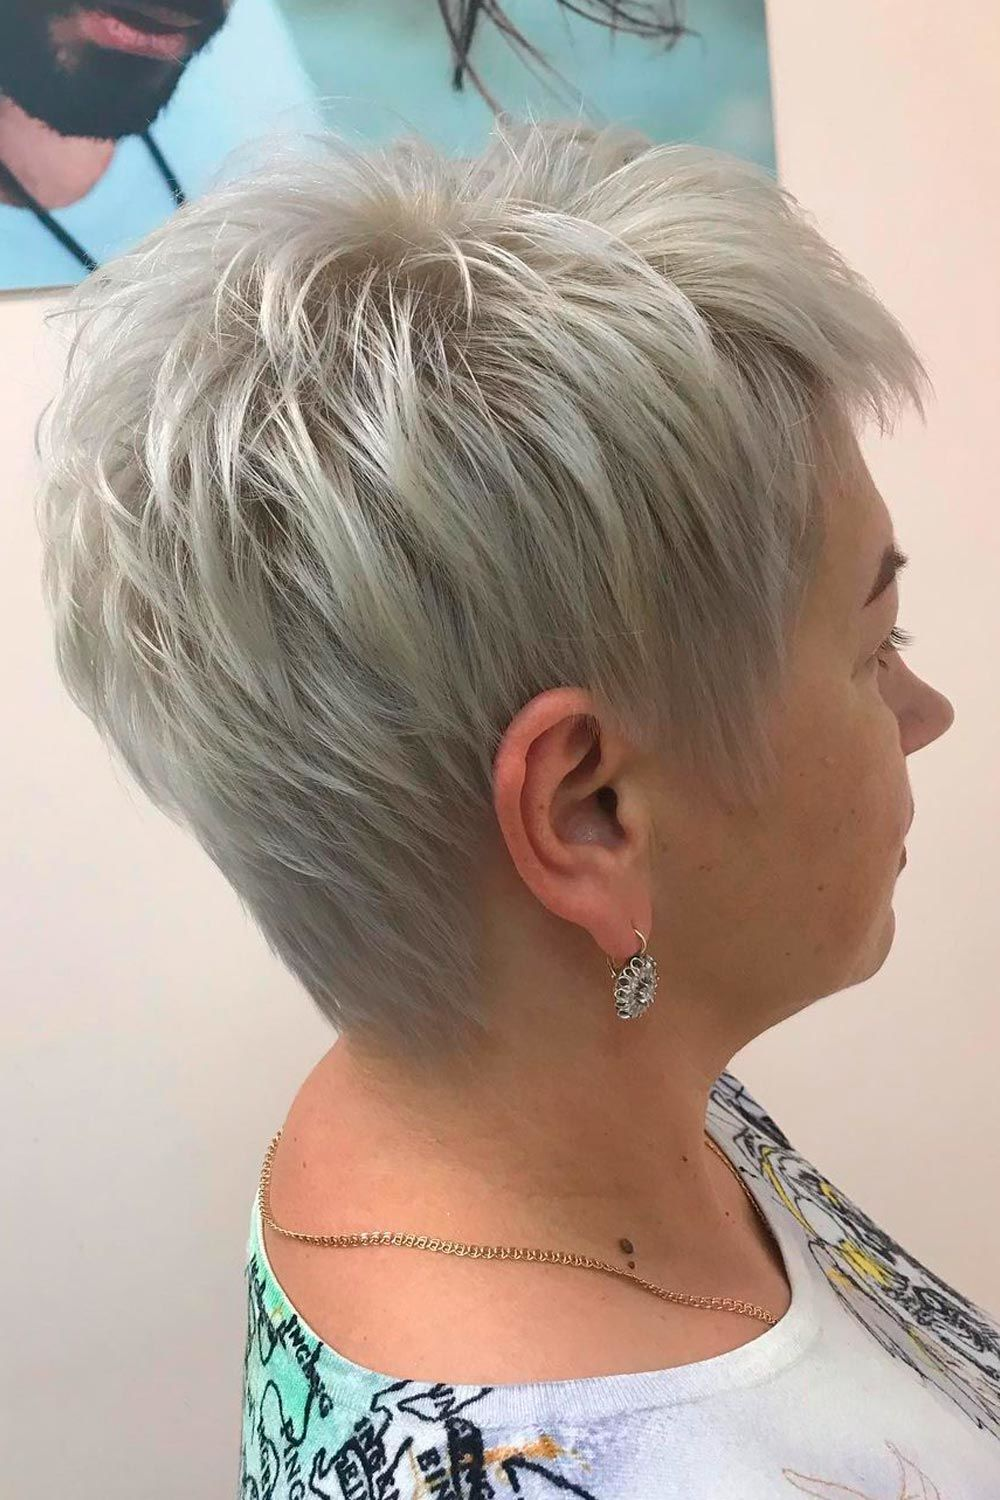 Platinum Pixie Hairstyles For Women Over 40, hairstyles for fine hair women over 40, medium length hairstyles with layers for women over 40, short hairstyles for thick hair women over 40